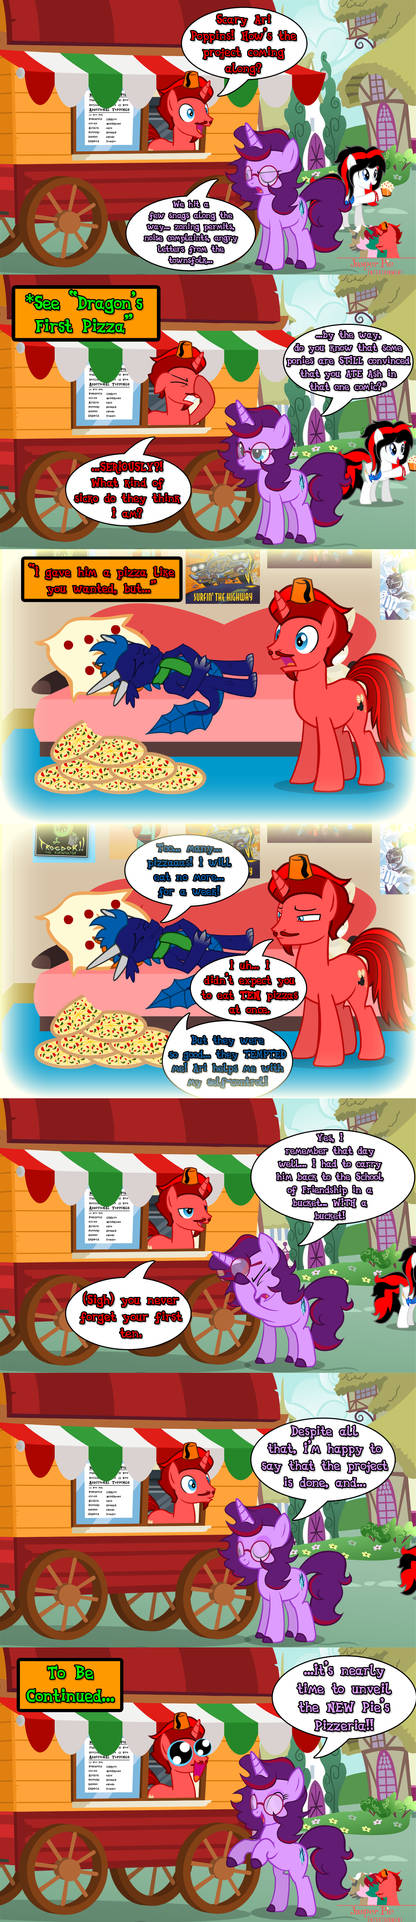 GIFT: Dragon's First Pizza Follow-Up